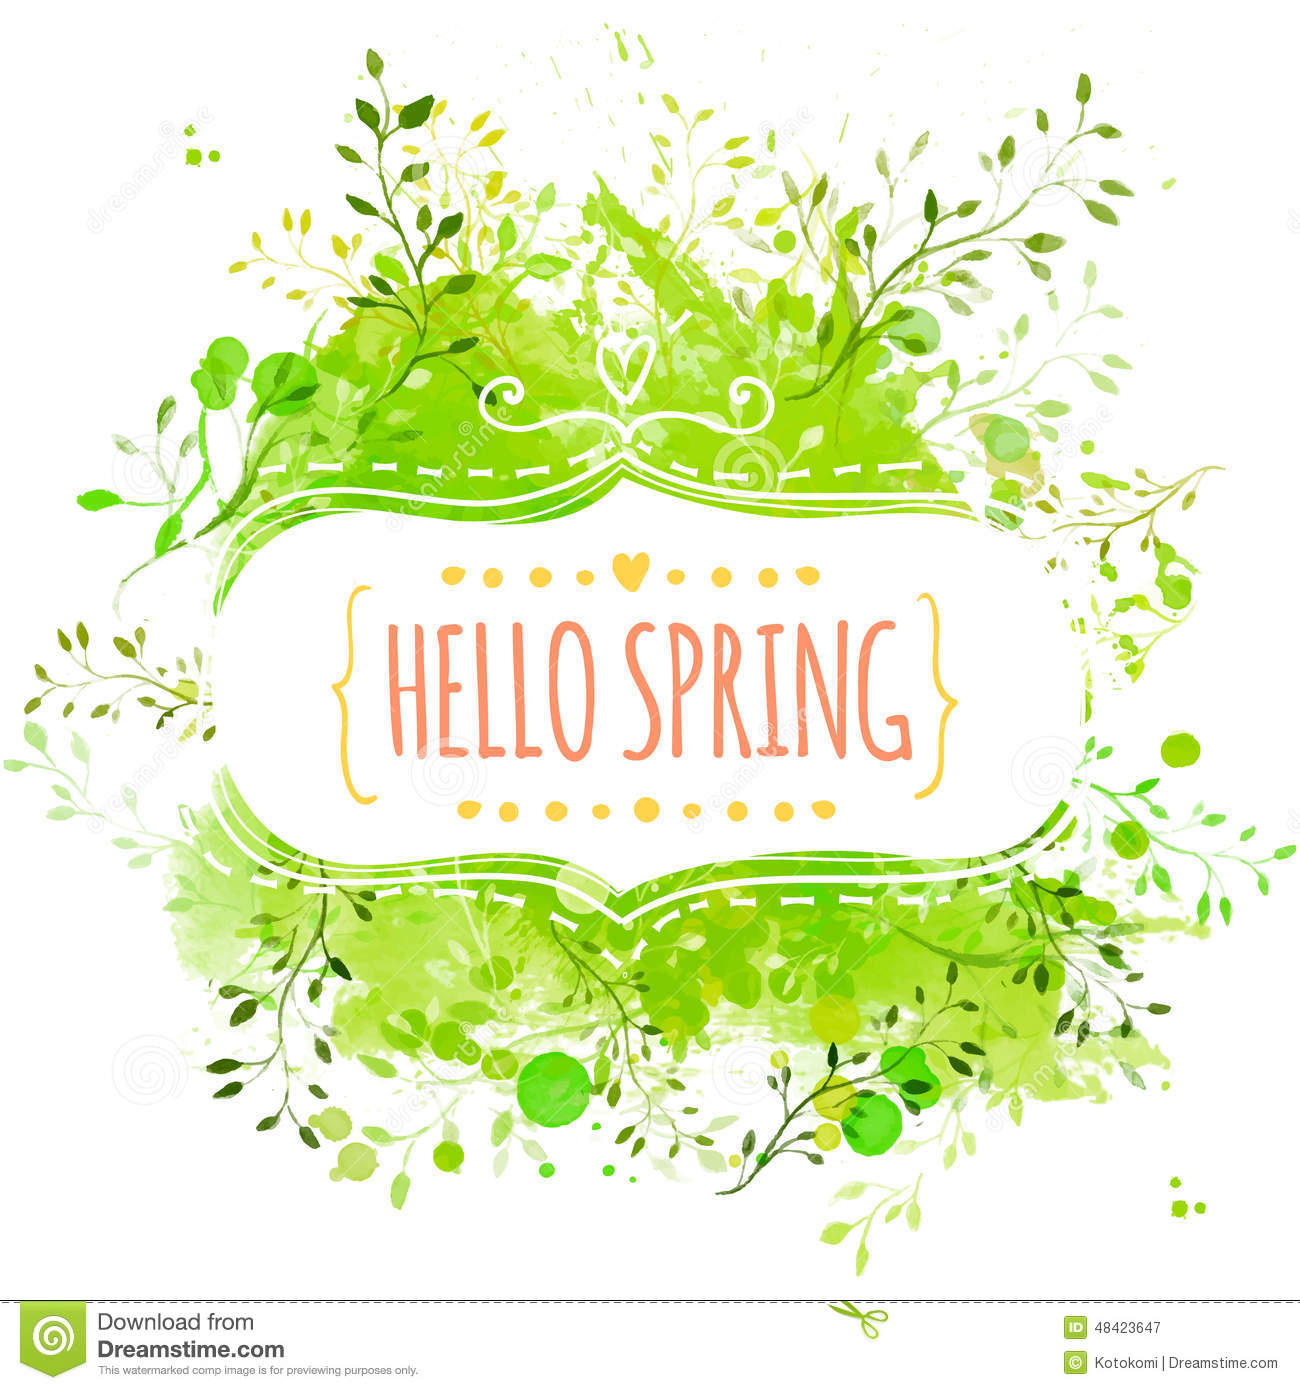 White decorative frame with text hello spring. Green paint splash background with leaves. Fresh vector design for banners